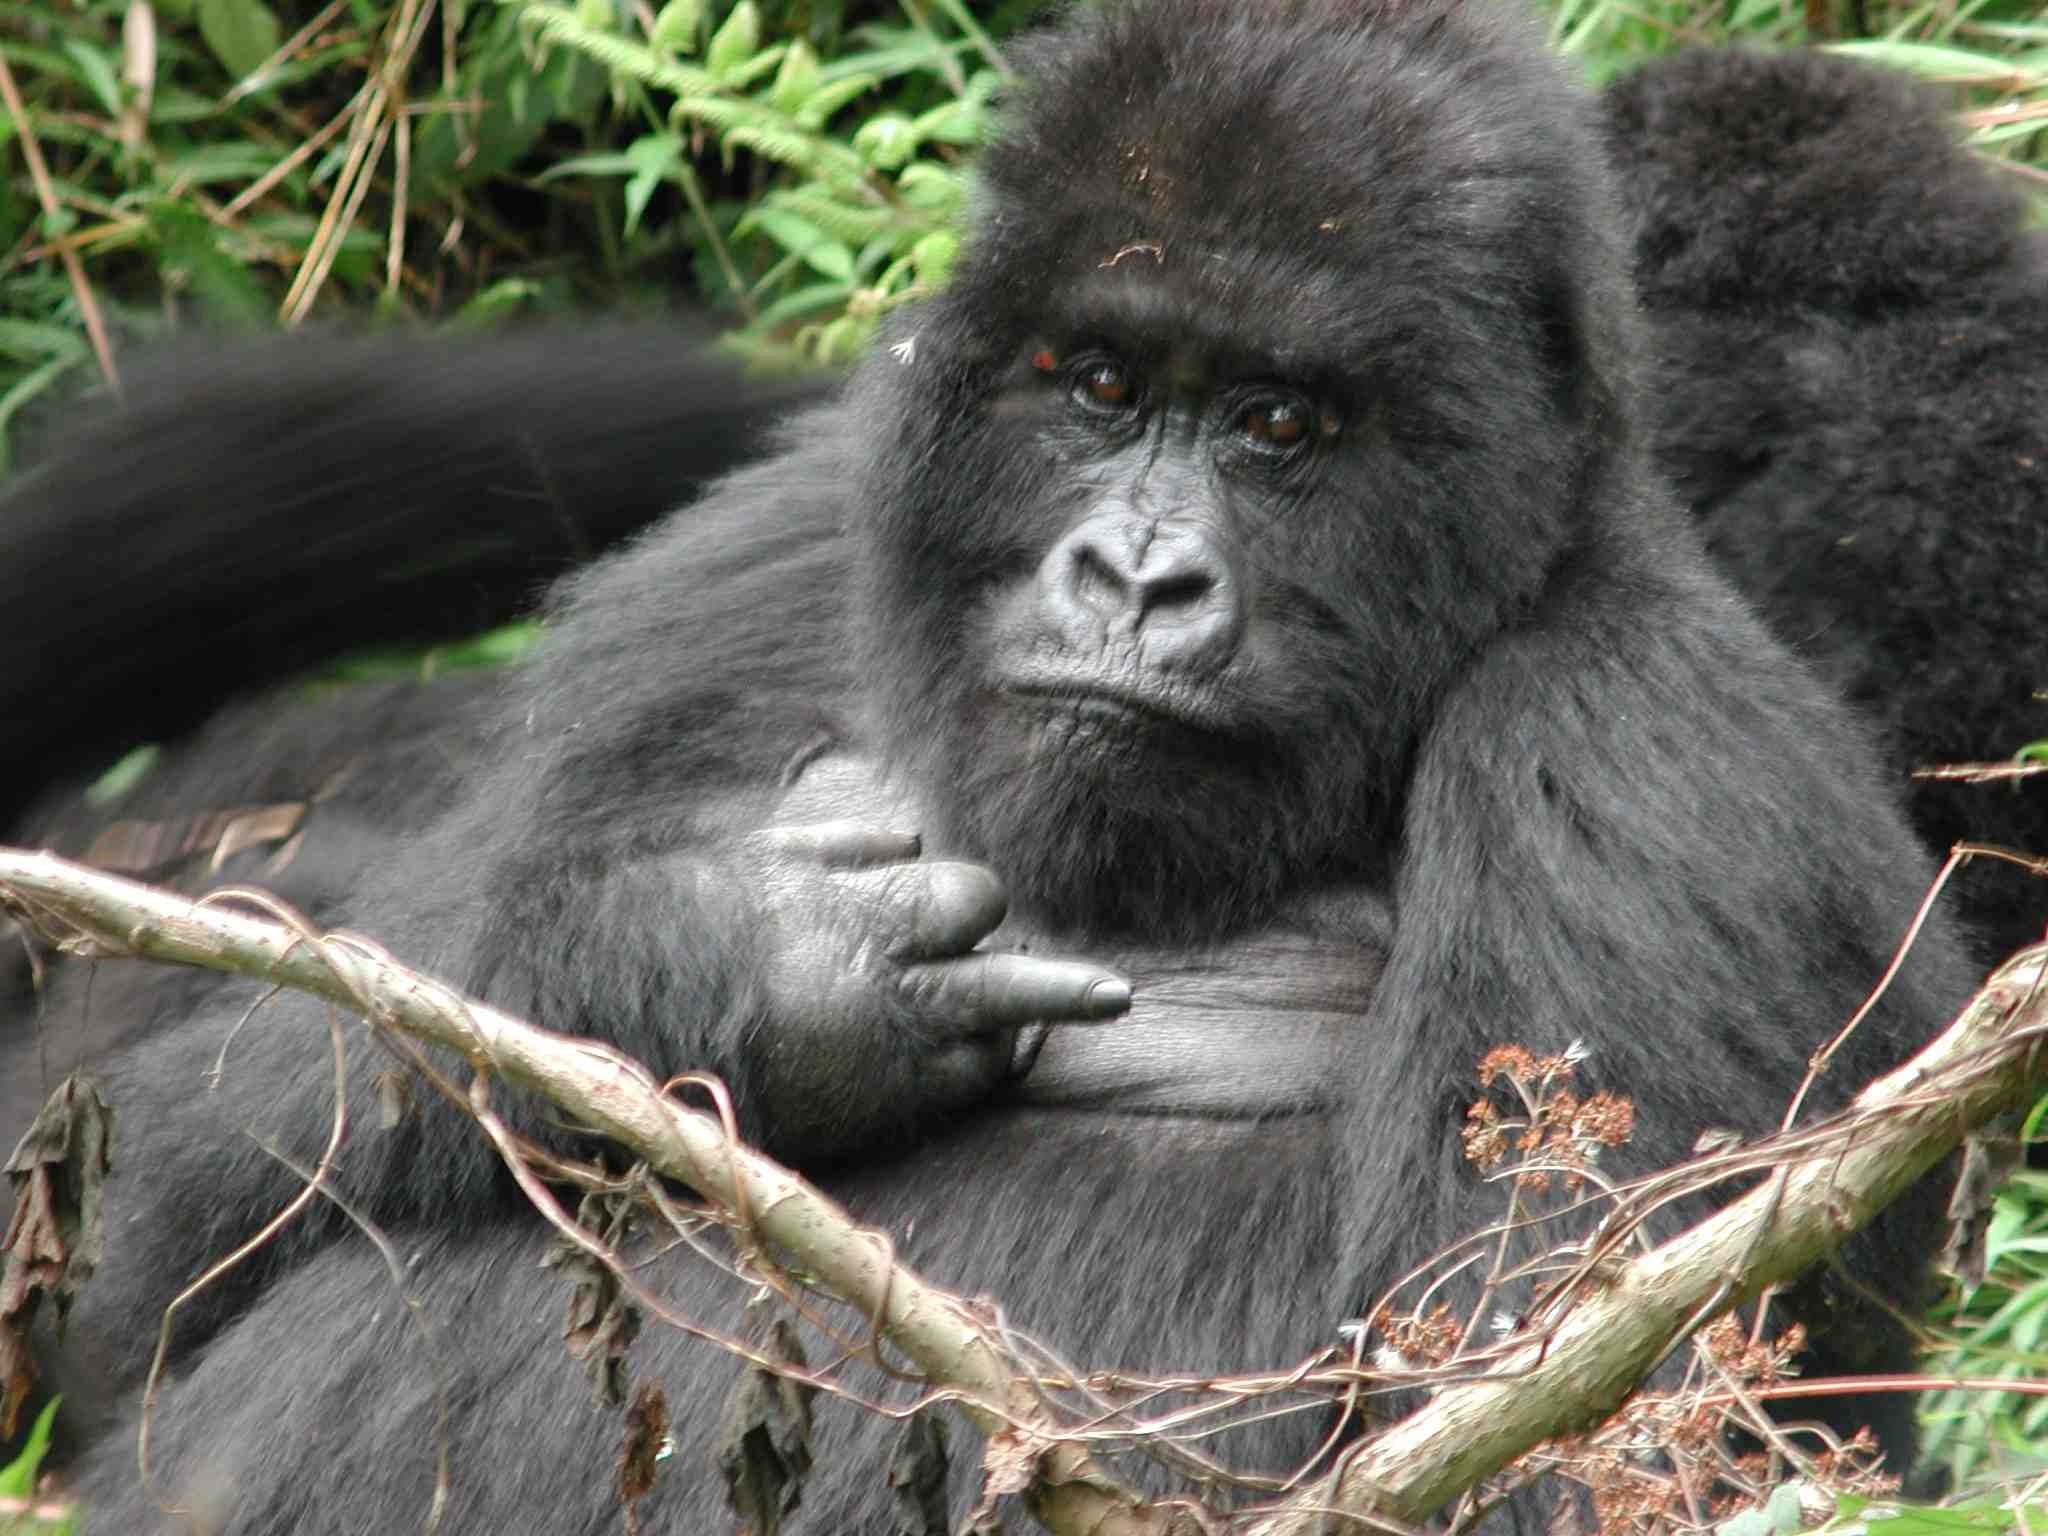 African mountain animals -  Ago I Posted A Positive Story About Gorillas Winning The Poaching Battle Here Is More Good News The Mountain Gorilla Posted In African Animals